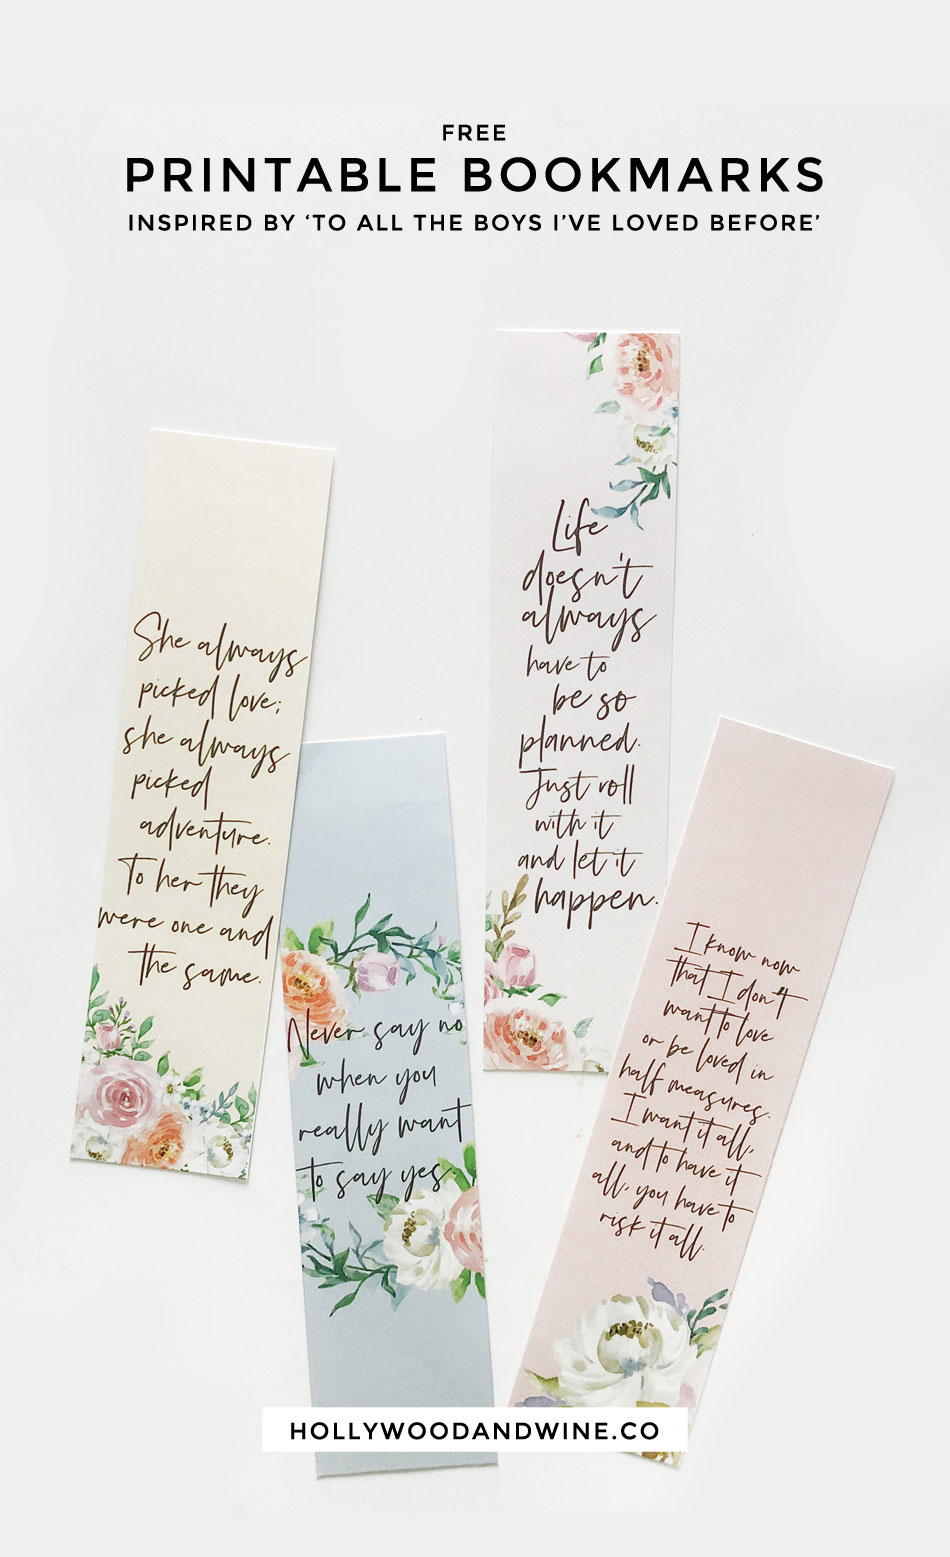 Free printable bookmarks inspired by To All The Boys I've Loved Before Book and soon to be Netflix movie! #TATBILB